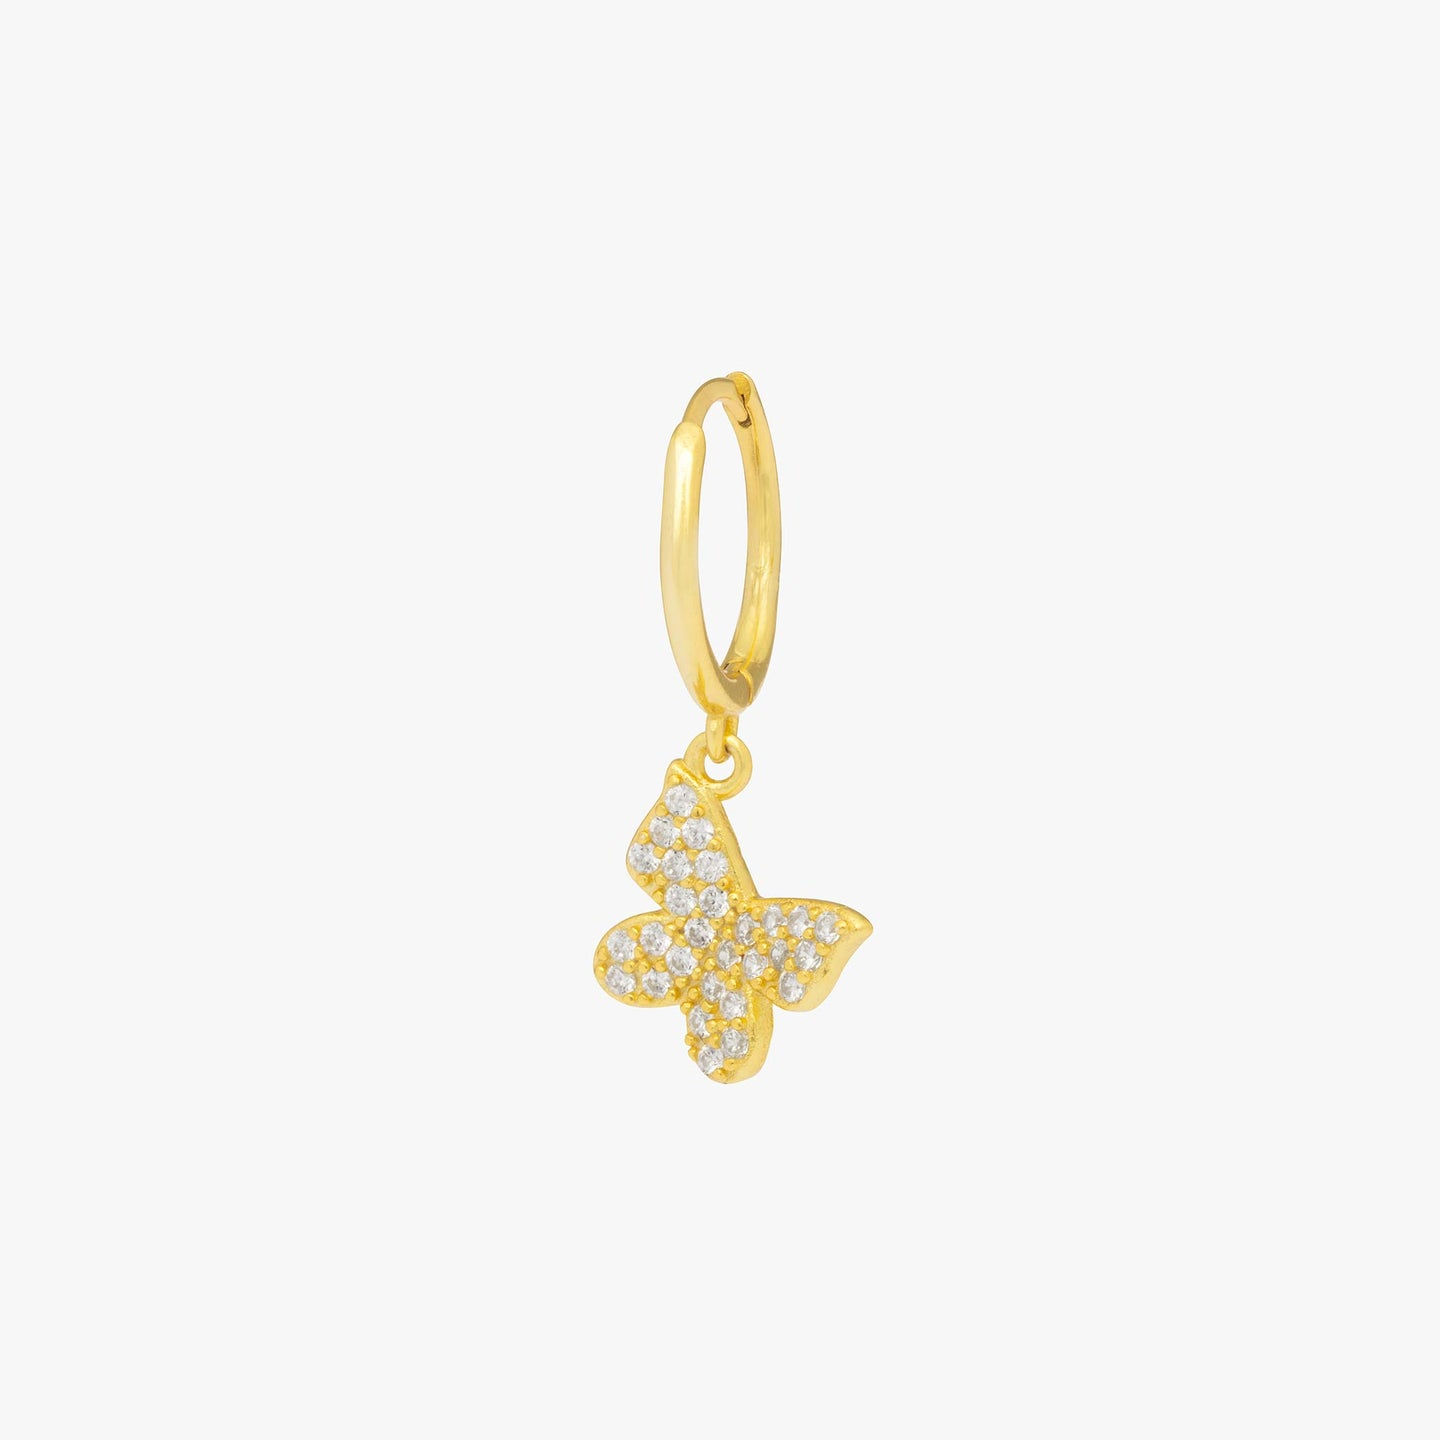 Pavé butterfly shaped charm on a gold huggie. color:gold